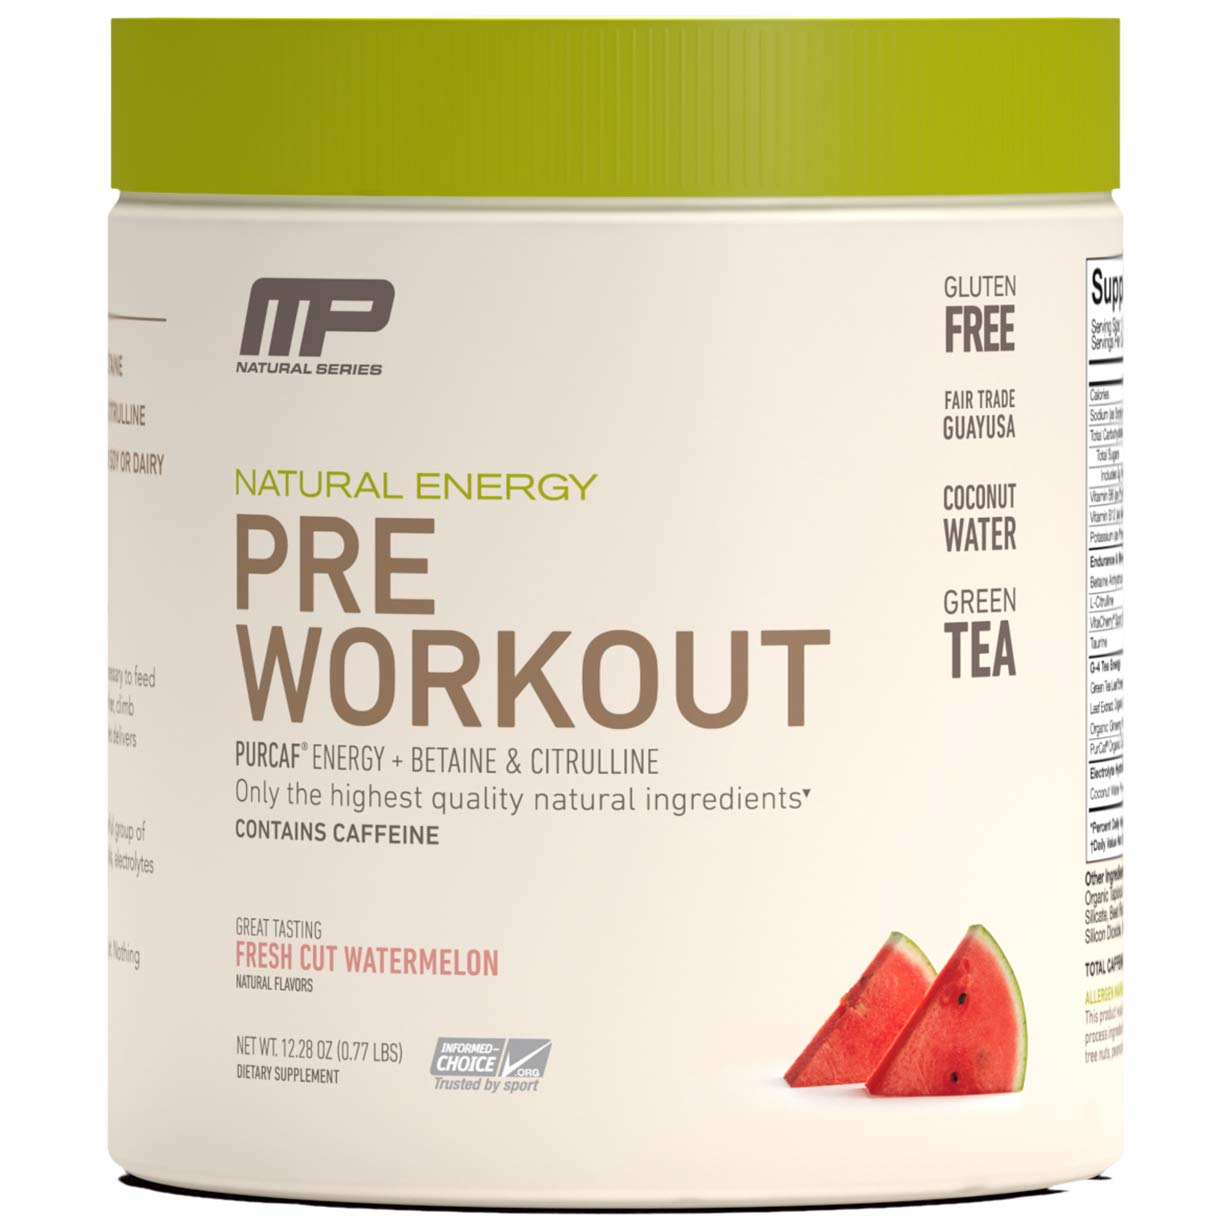 MP All Natural Pre-Workout, Increase Energy, Endurance and Strength - Organic Caffeine, Green Tea, Electrolyte Hydration, Nitric Oxide Booster, Fresh Cut Watermelon, 30 Servings by Muscle Pharm